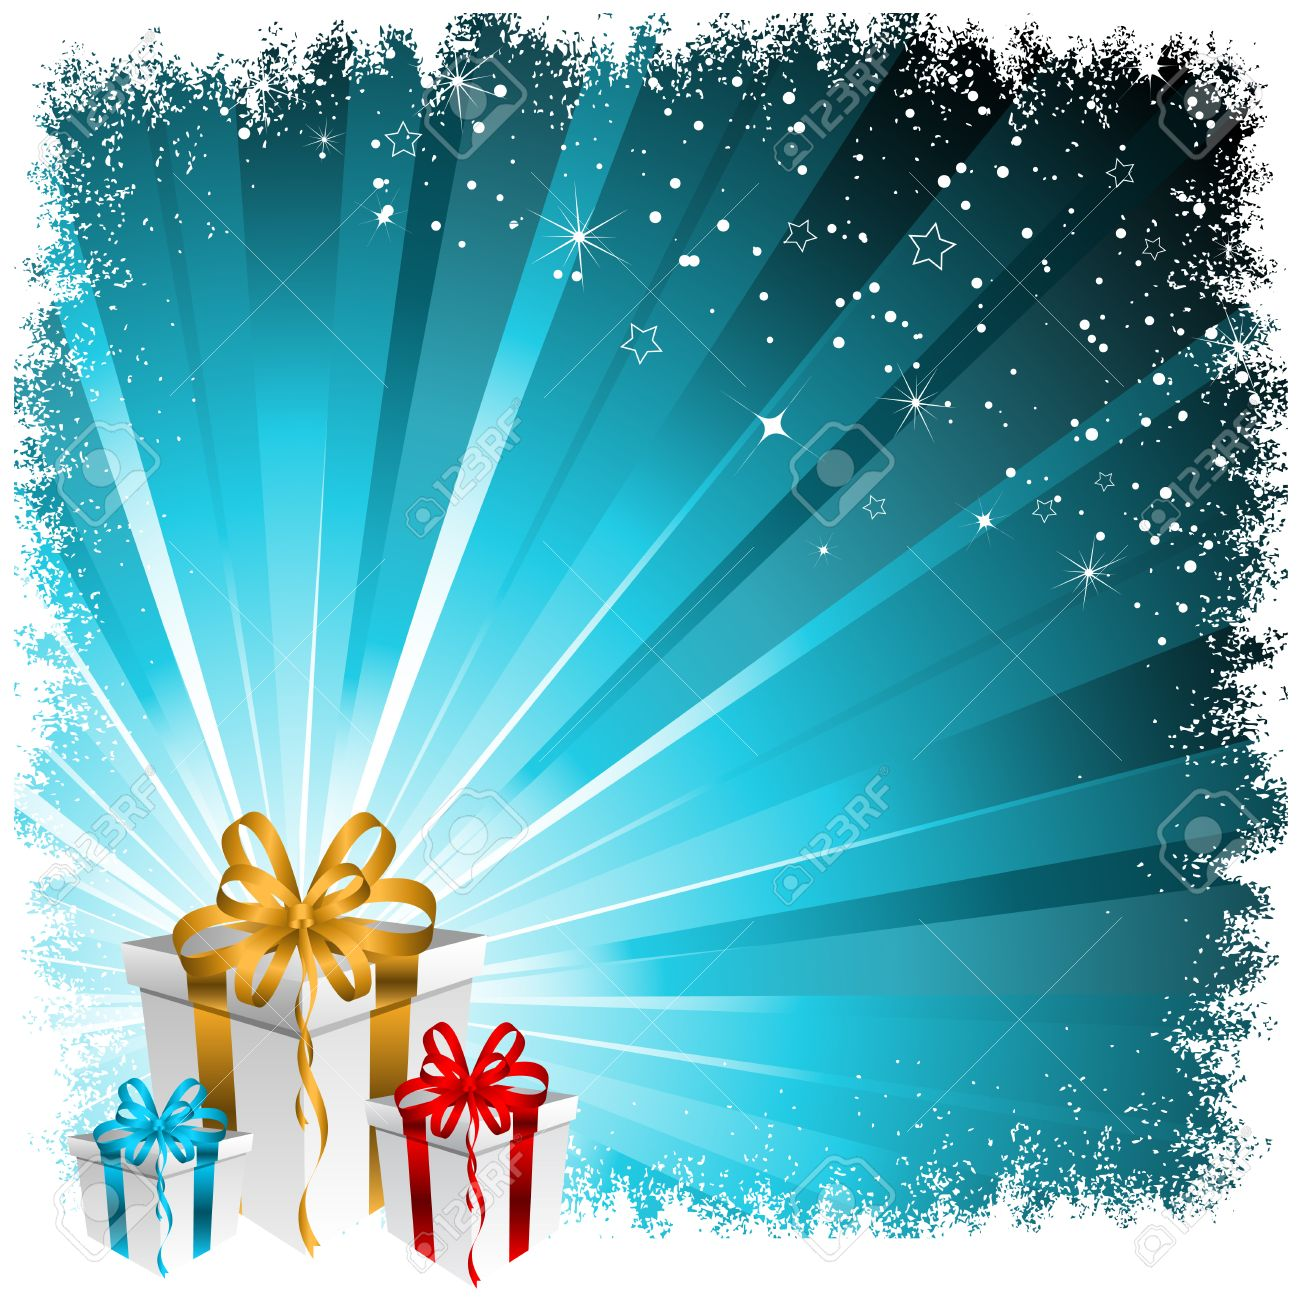 Christmas Gift Background With Snowy Border Royalty Free Cliparts ...